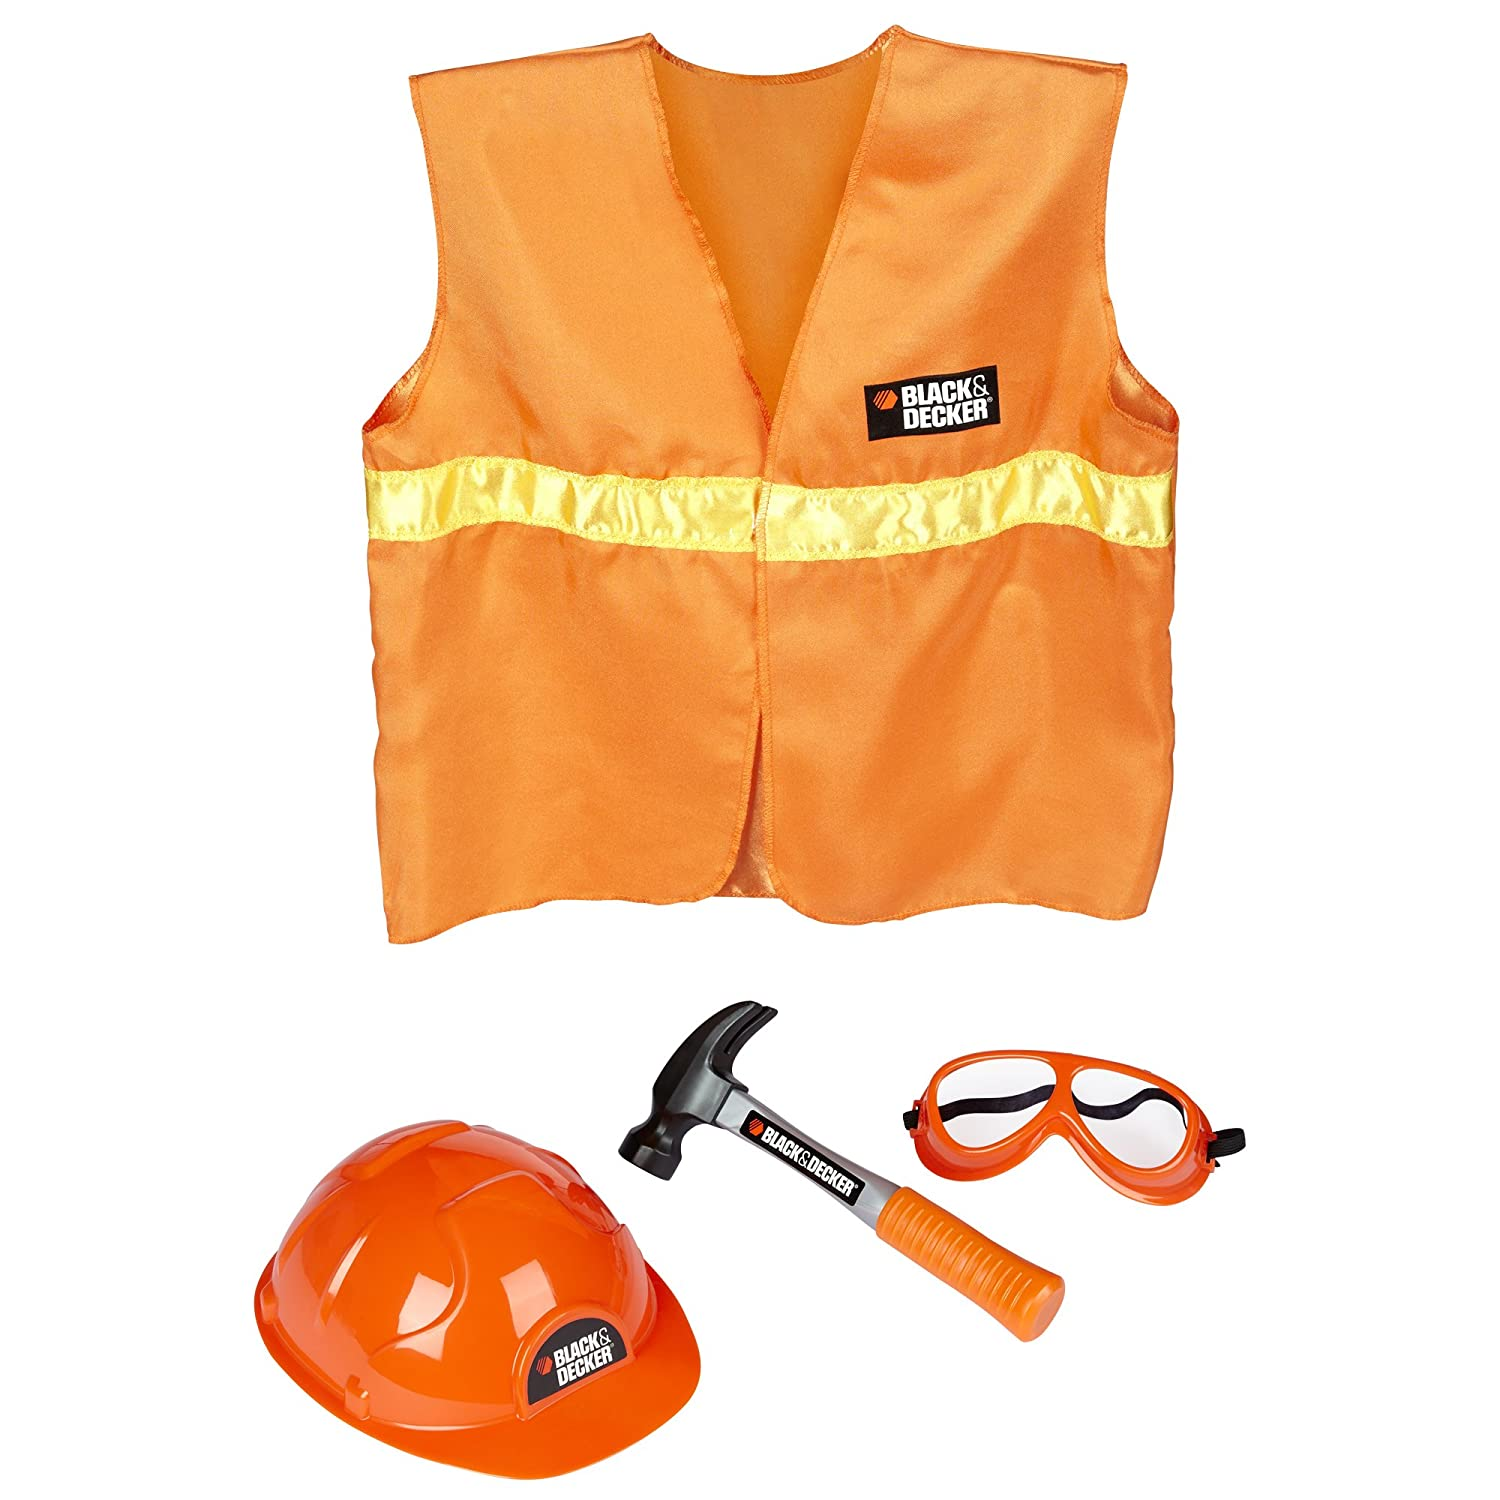 BLACK+DECKER Jr. Dress Up and Play Safety Set Black & Decker Junior 50678